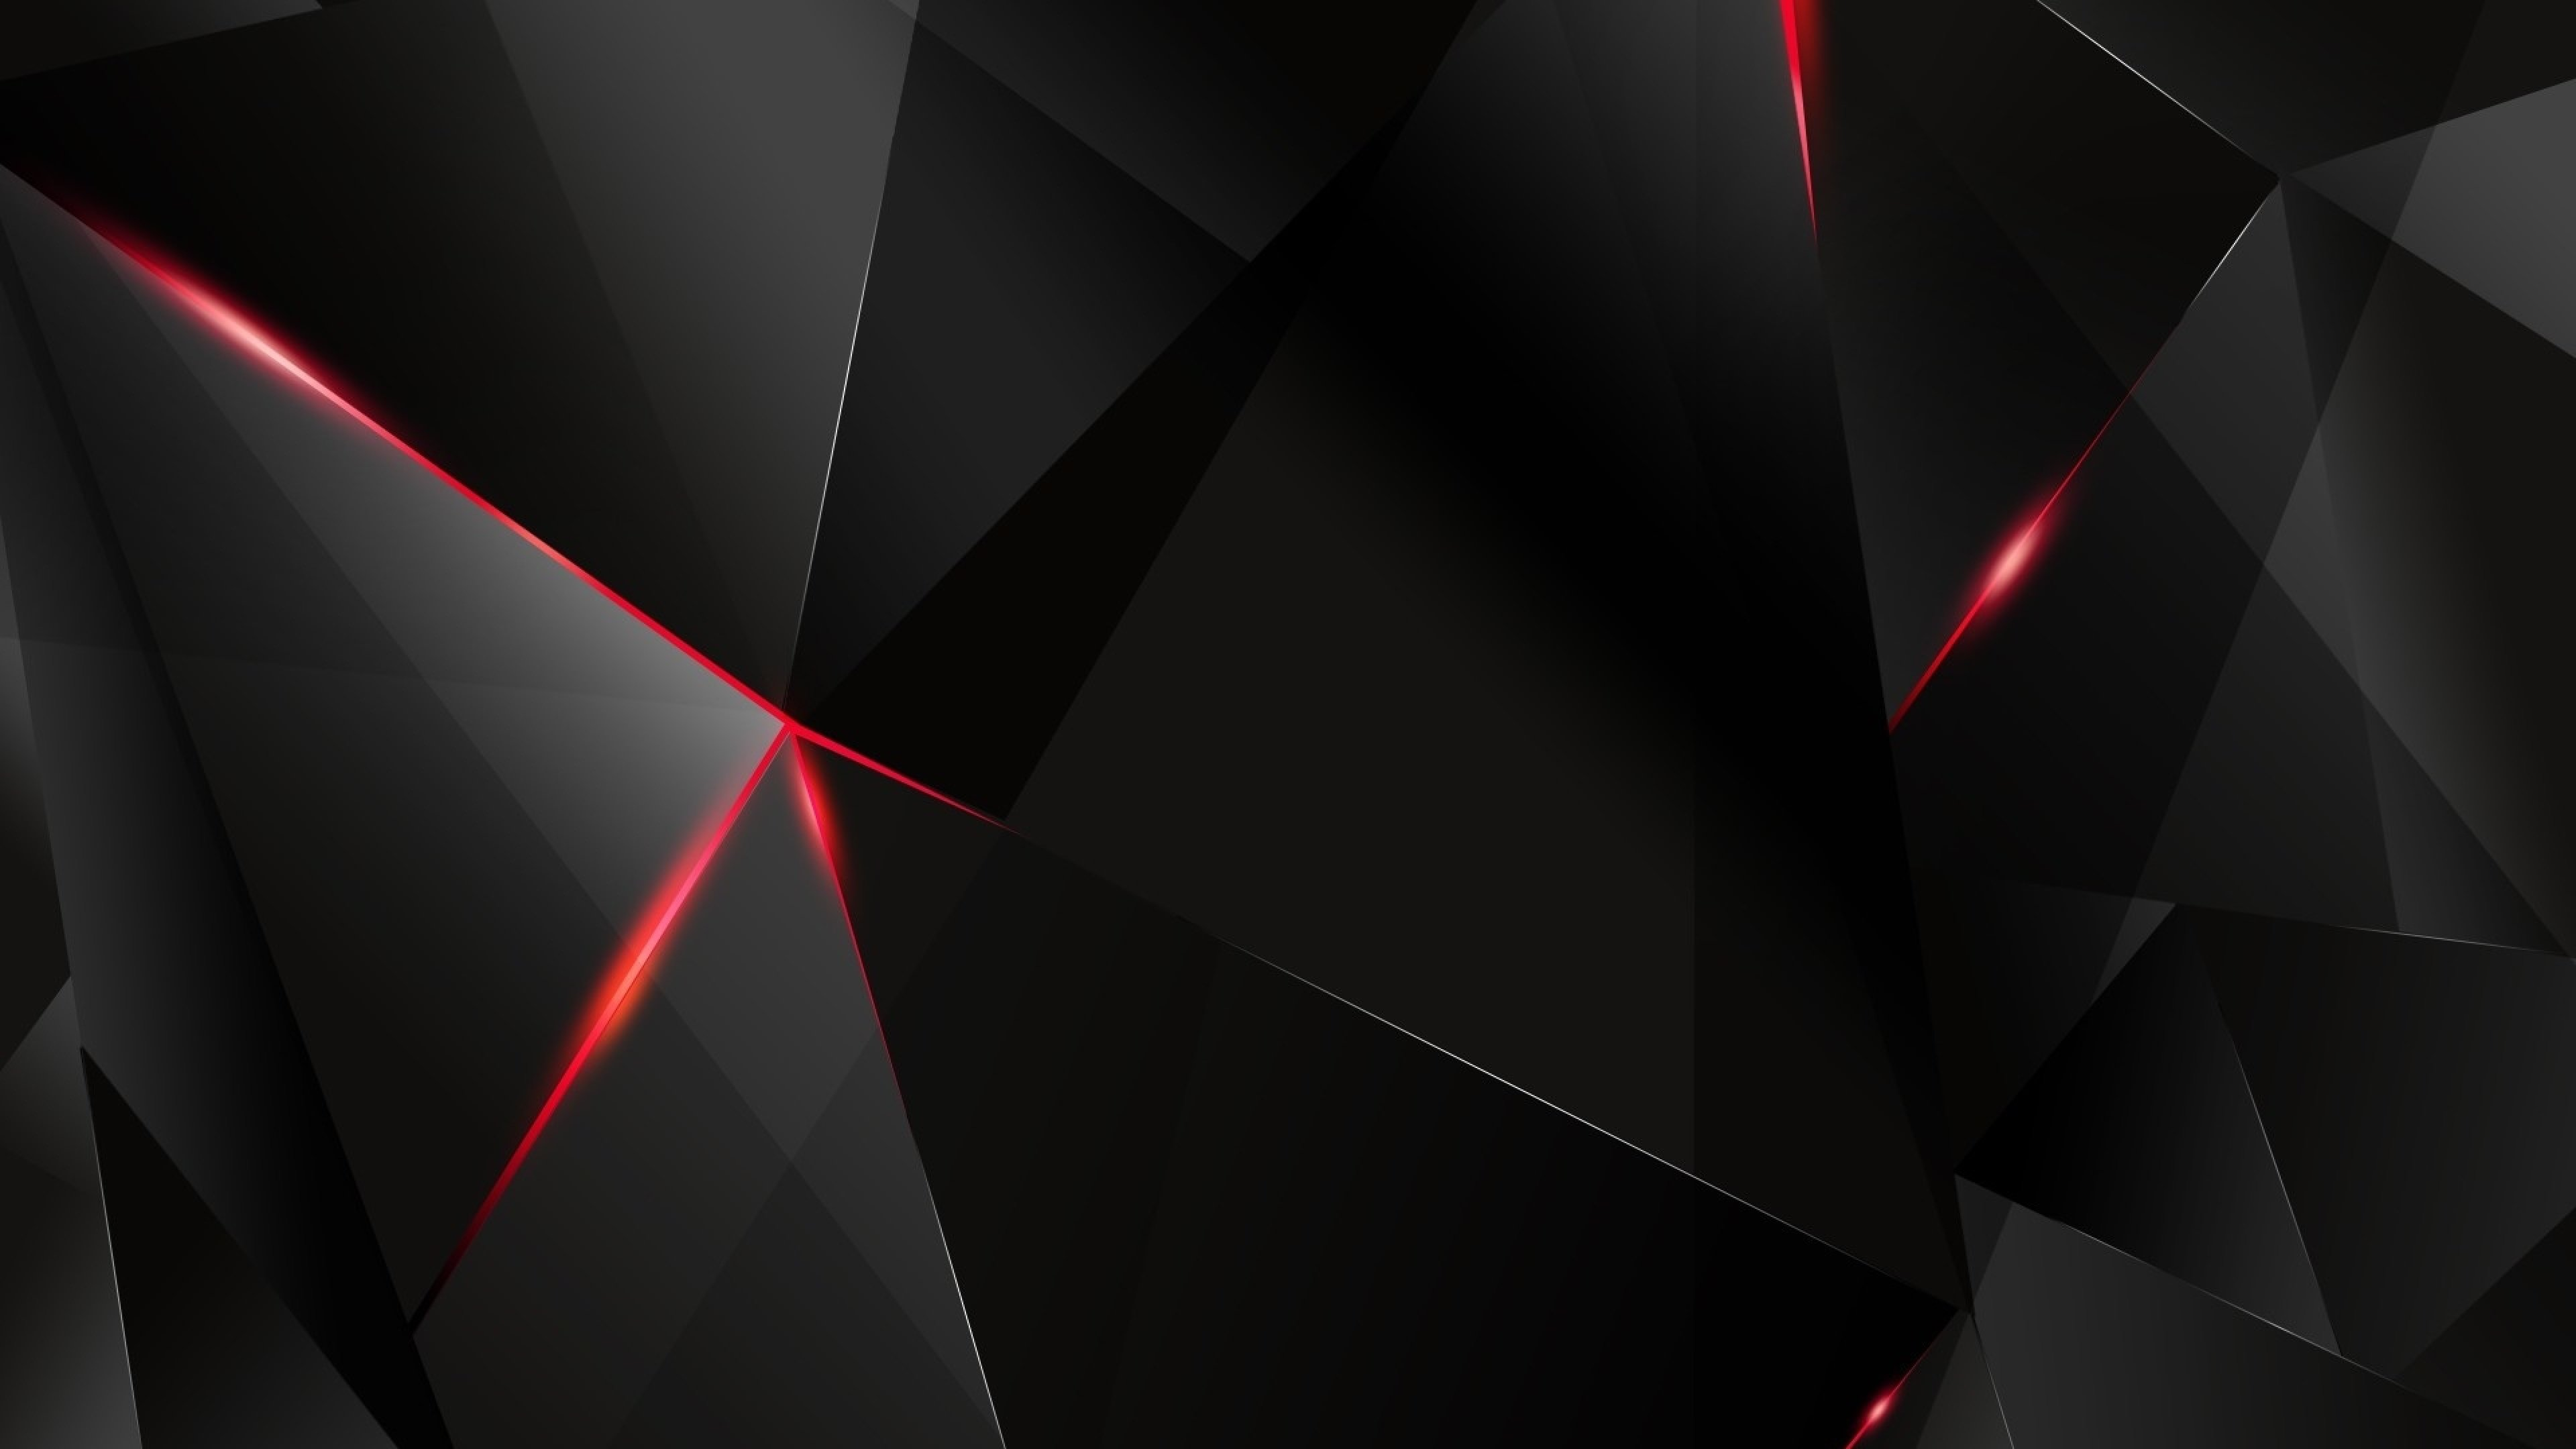 Black Wallpaper 4k Wallpapersafari